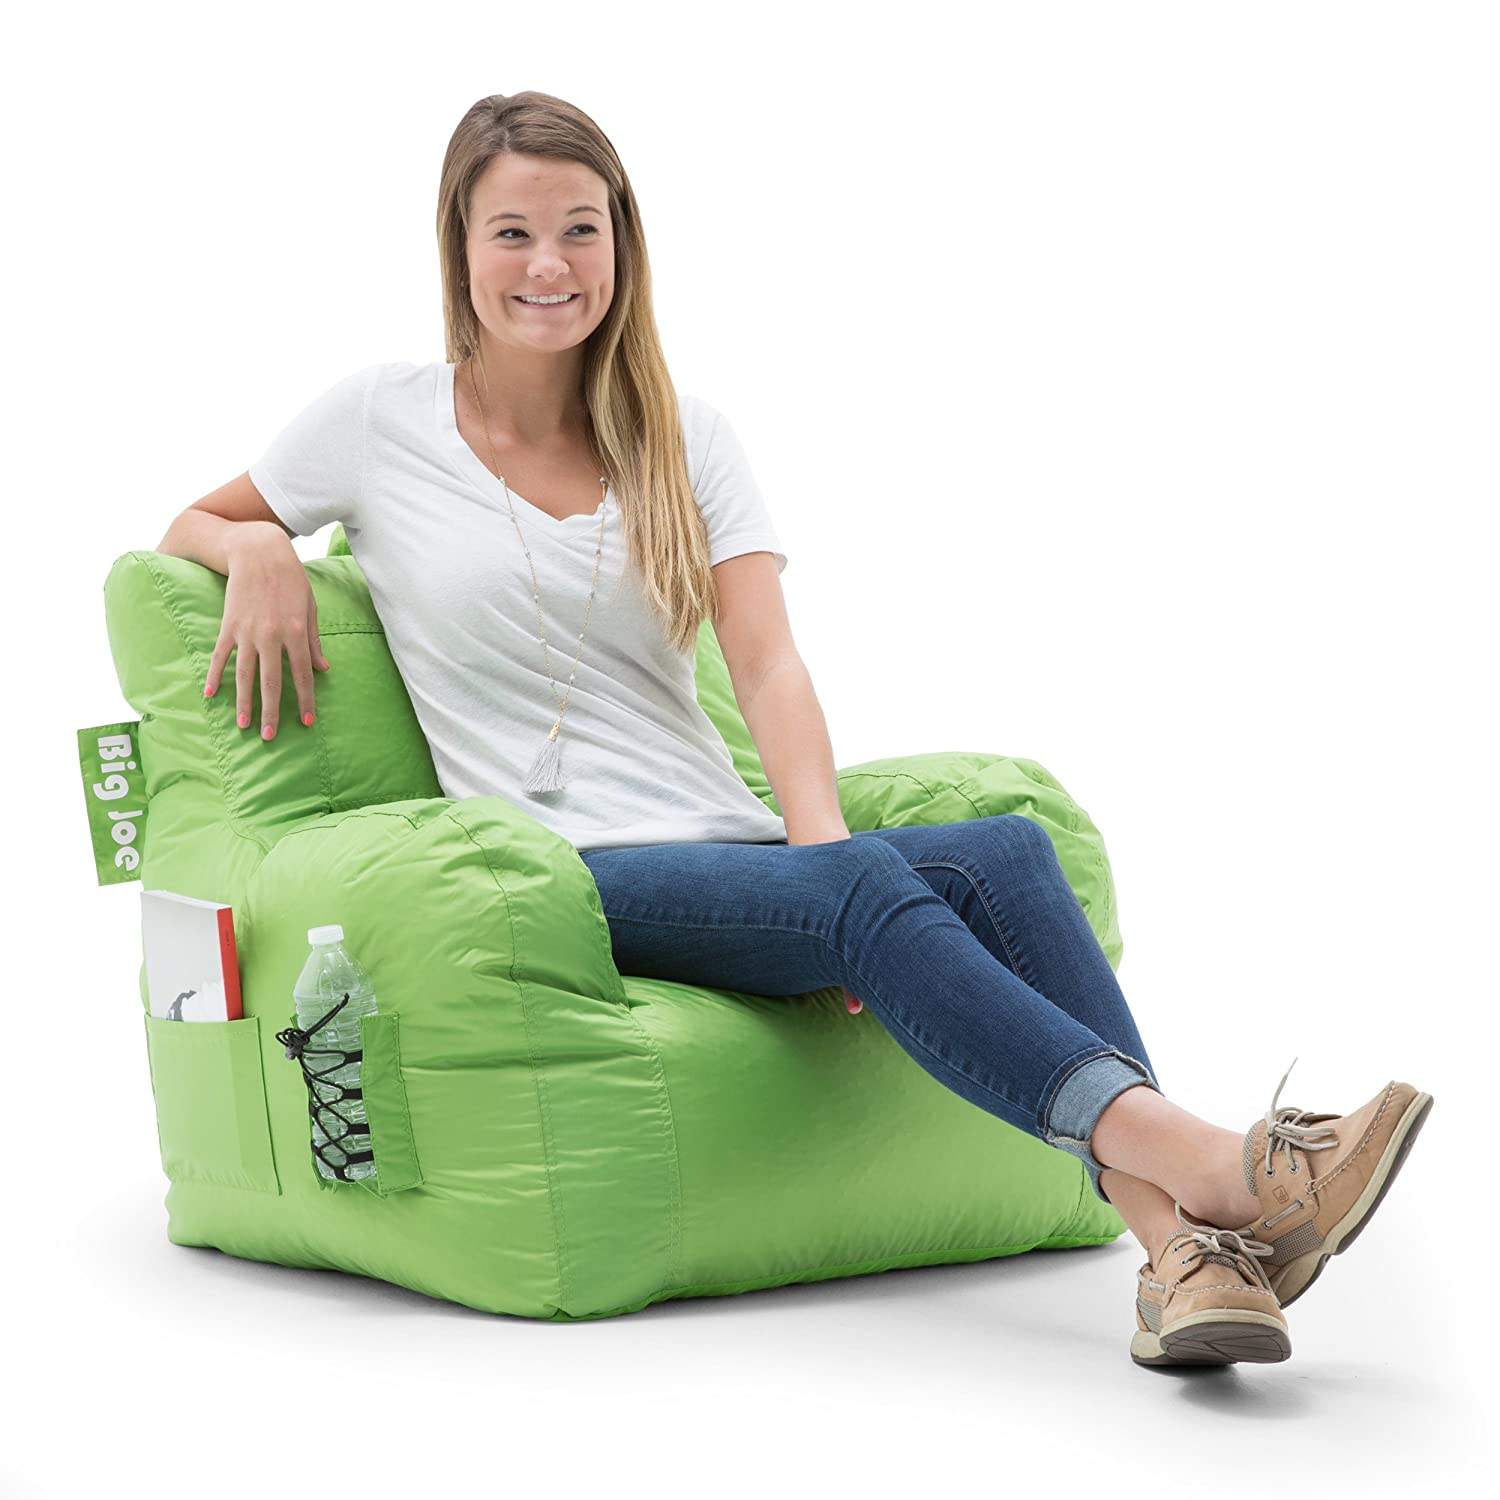 Spicy Lime Big Joe Dorm Bean Bag Chair, Flaming Red